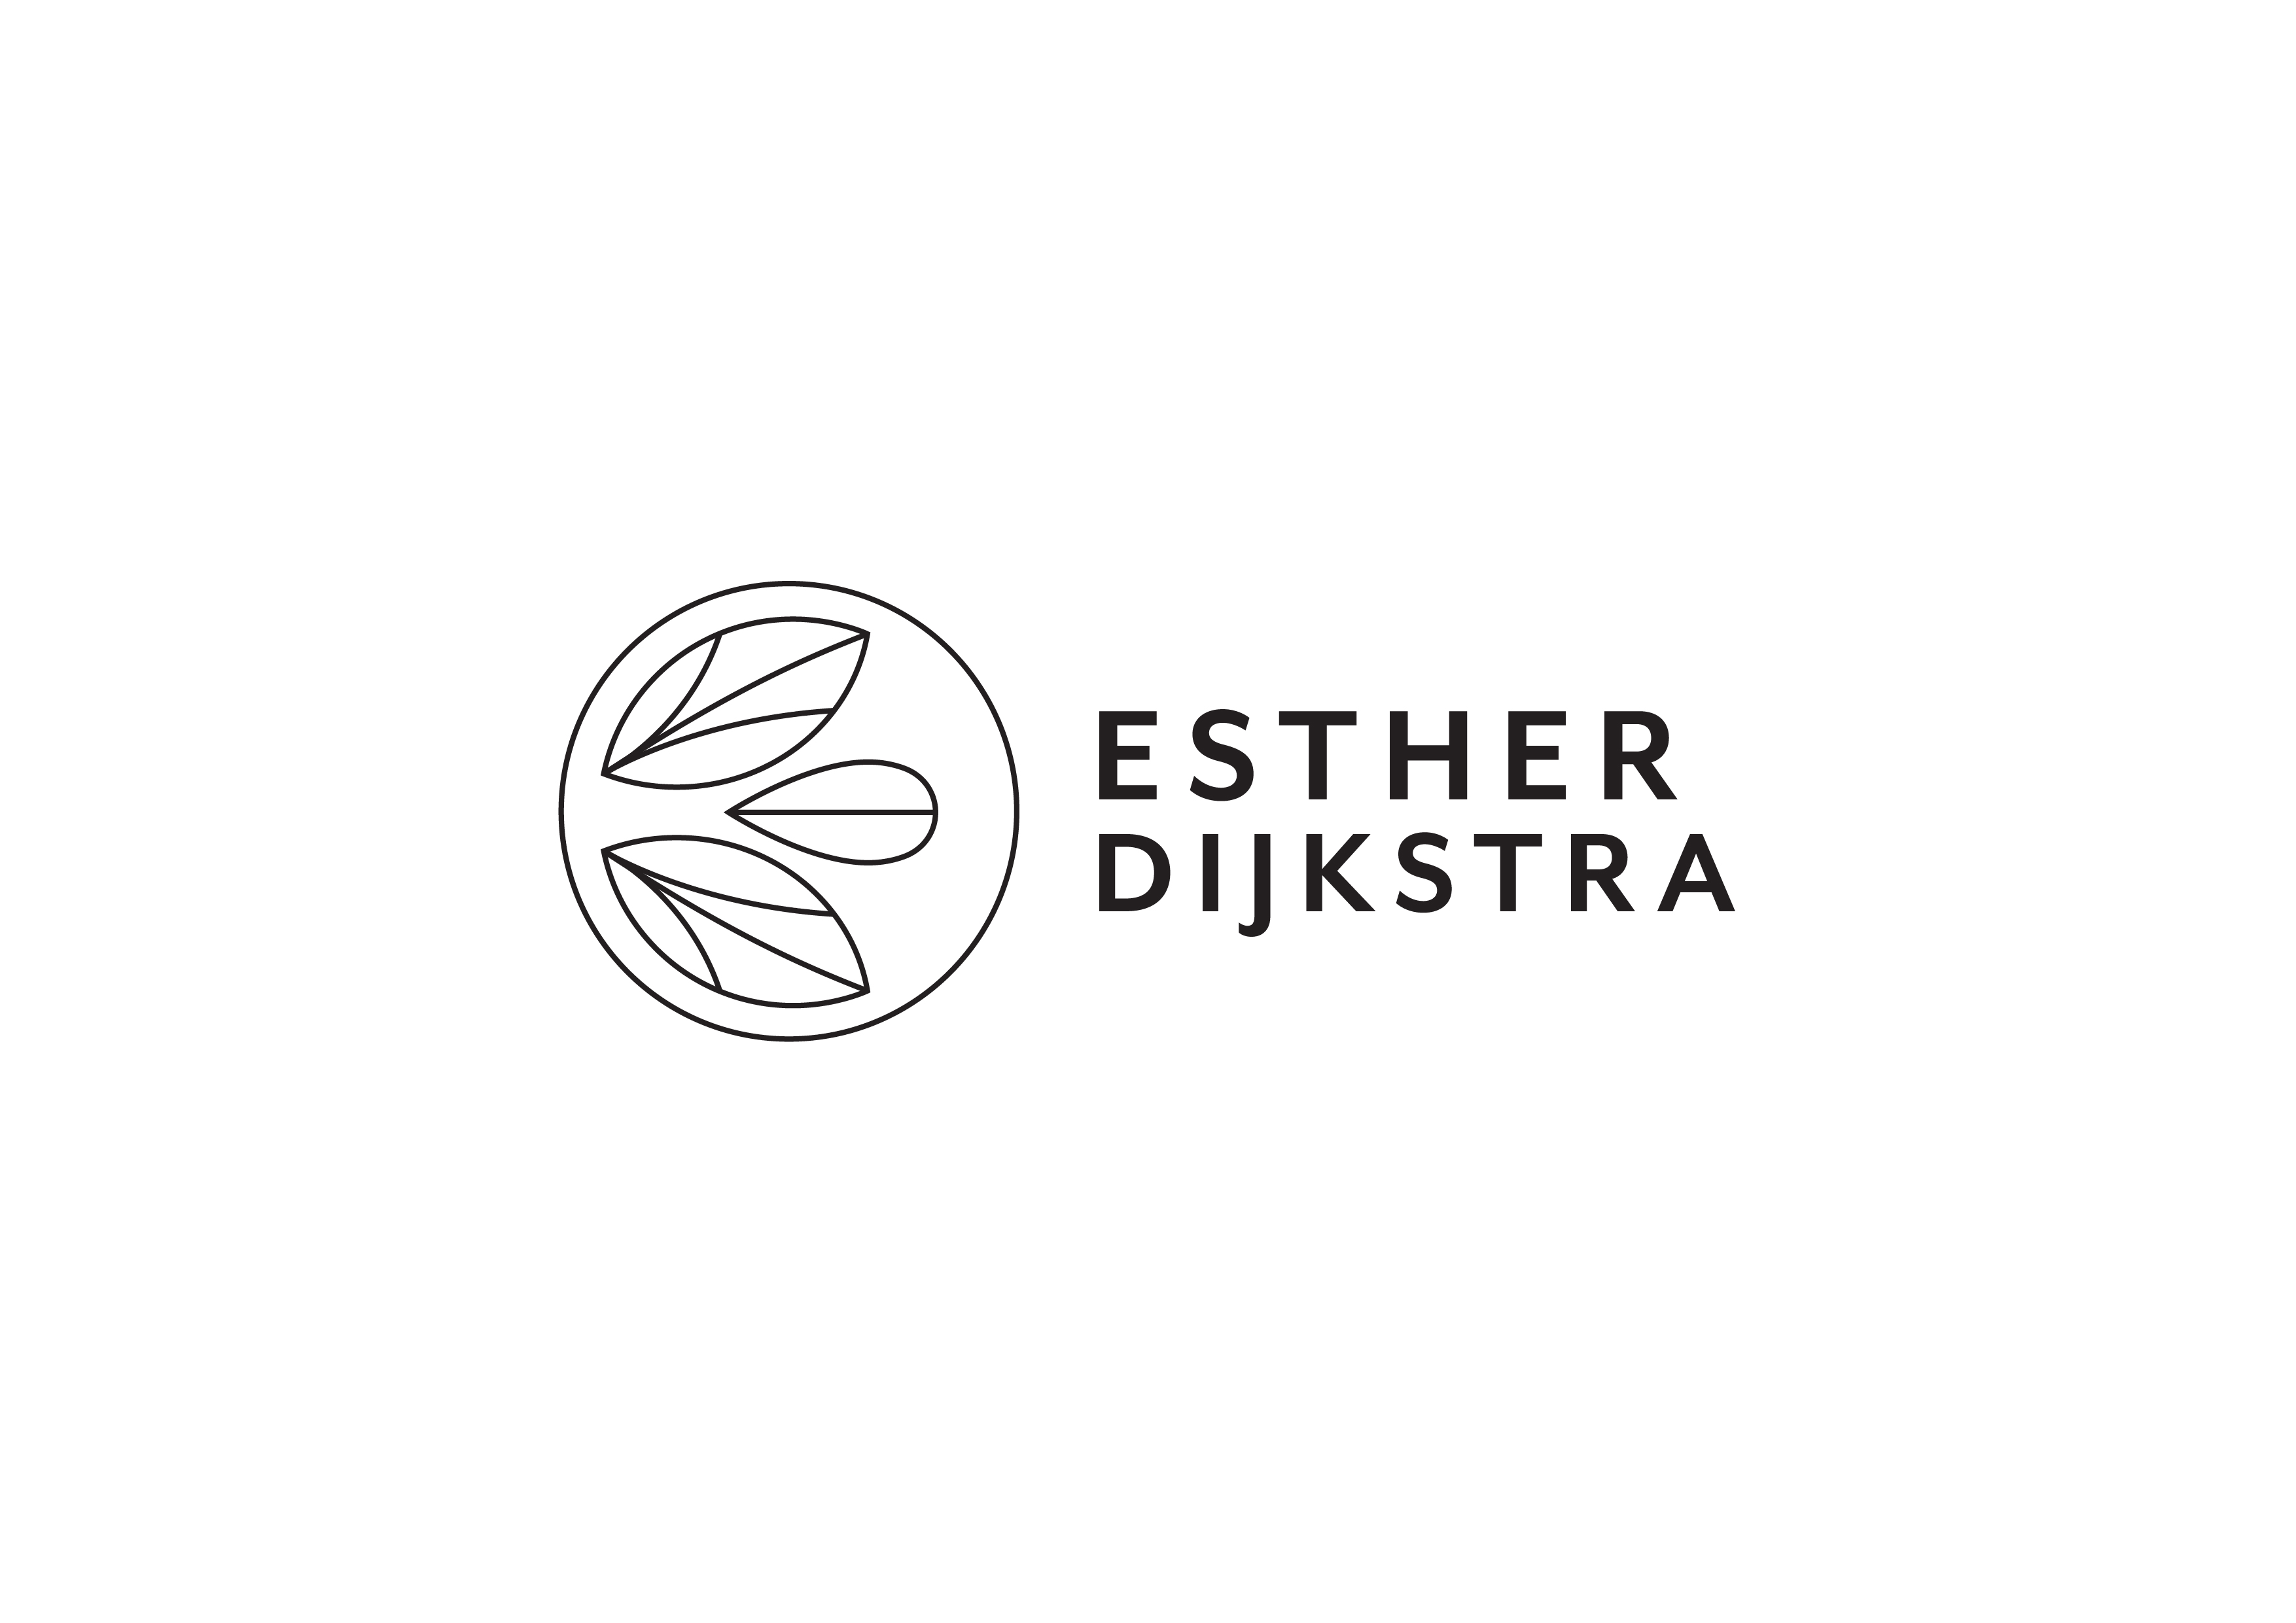 Esther Dijkstra Logo Full Outline Black